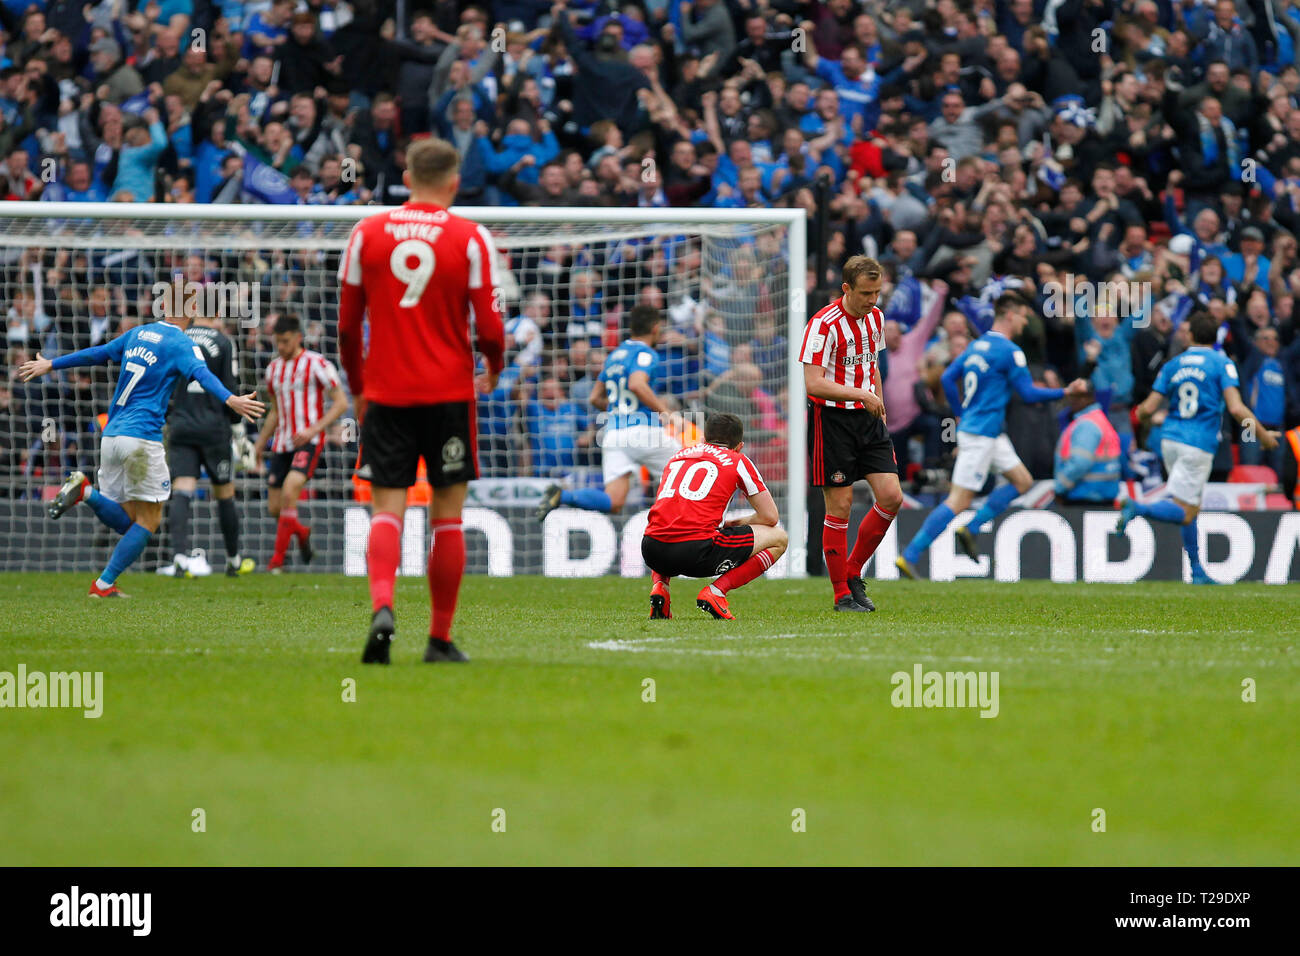 Sunderland AFC players are dejected after Portsmouth  take the lead during the Checkatrade Trophy Final match between Portsmouth and Sunderland at Wembley Stadium, London, England on 31 March 2019. Photo by Carlton Myrie.  Editorial use only, license required for commercial use. No use in betting, games or a single club/league/player publications. - Stock Image